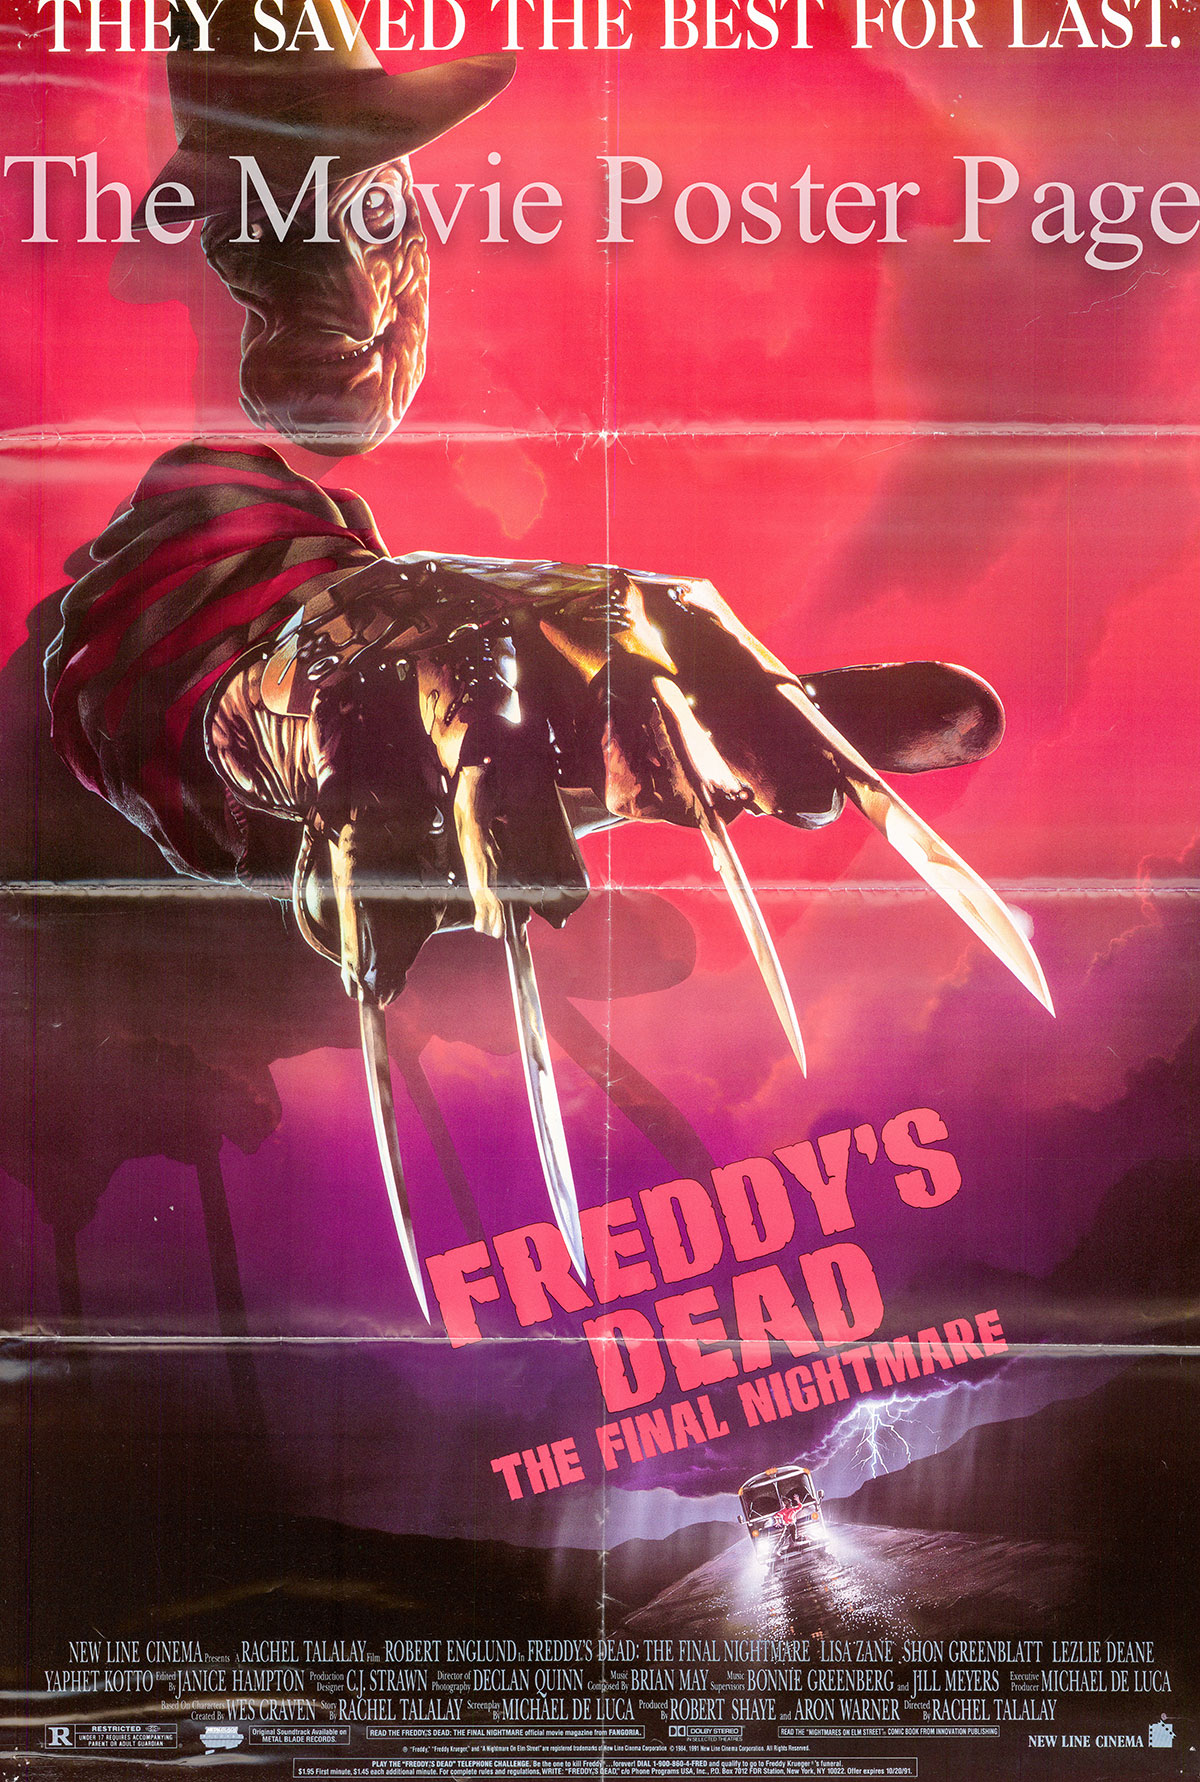 Pictured is a US promotional one-sheet poster for the 1991 Rachel Talalay film Freddy's Dead: The Final Nightmare starring Robert Englund.